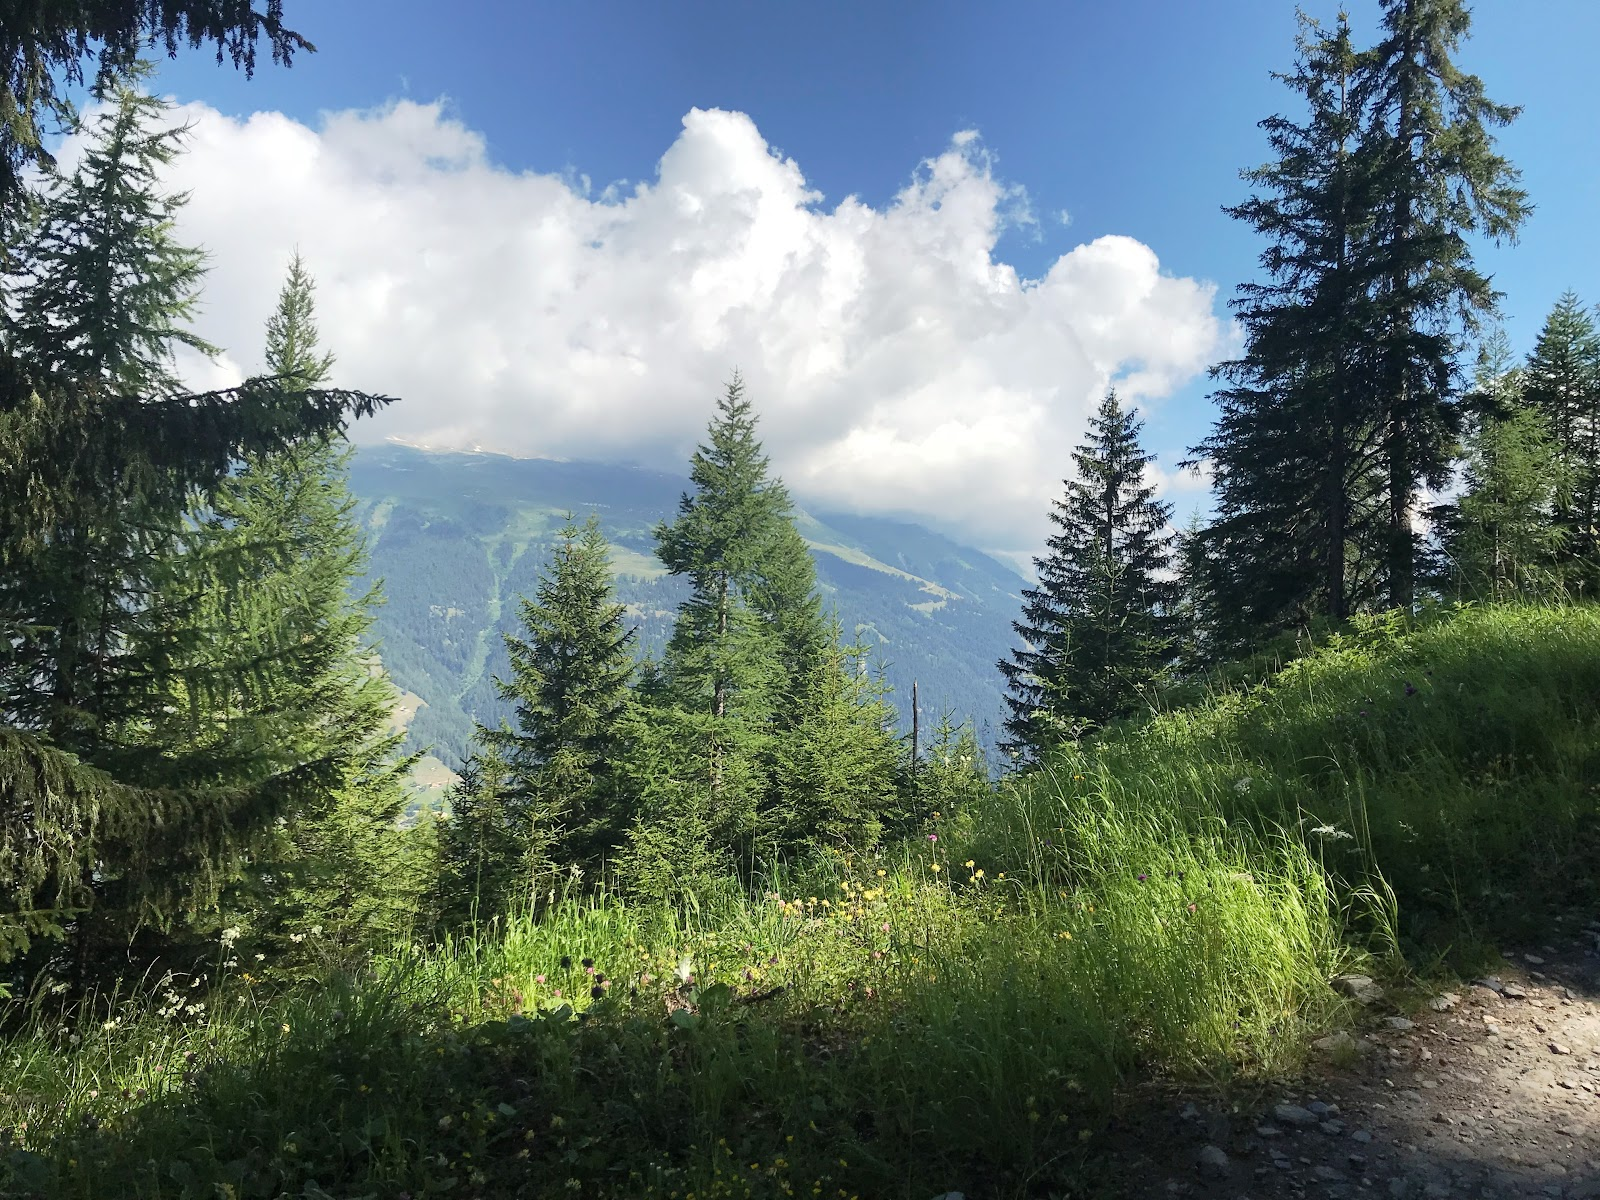 Bicycling Breithorn - views of Rhone Valley